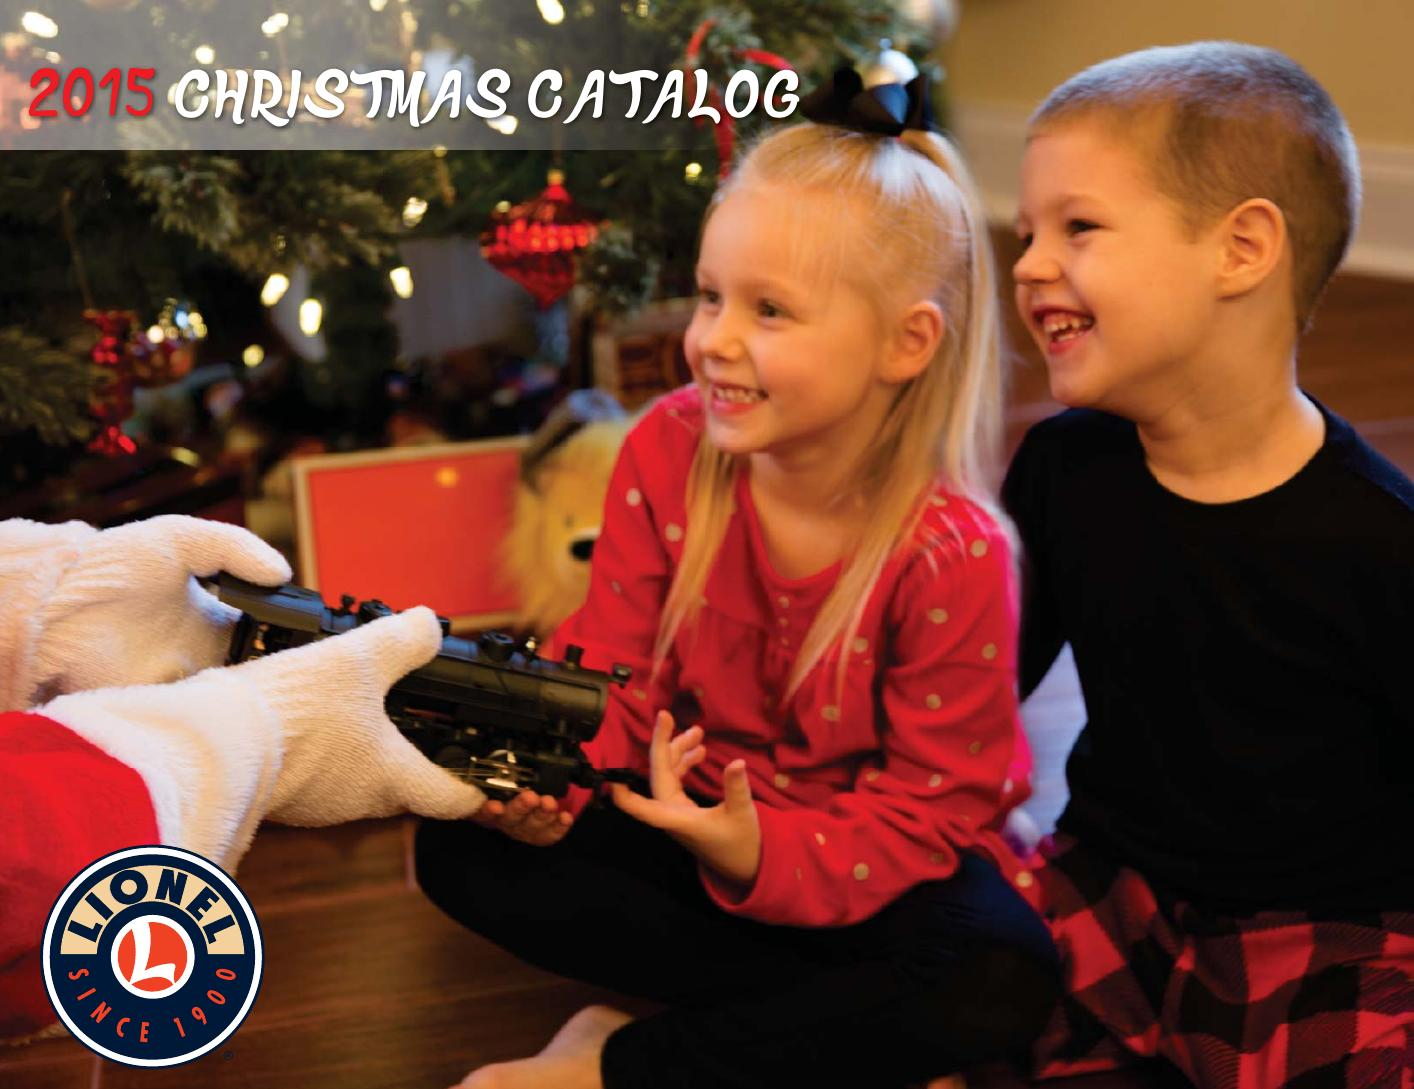 Lionel Catalogs - Christmas 2015